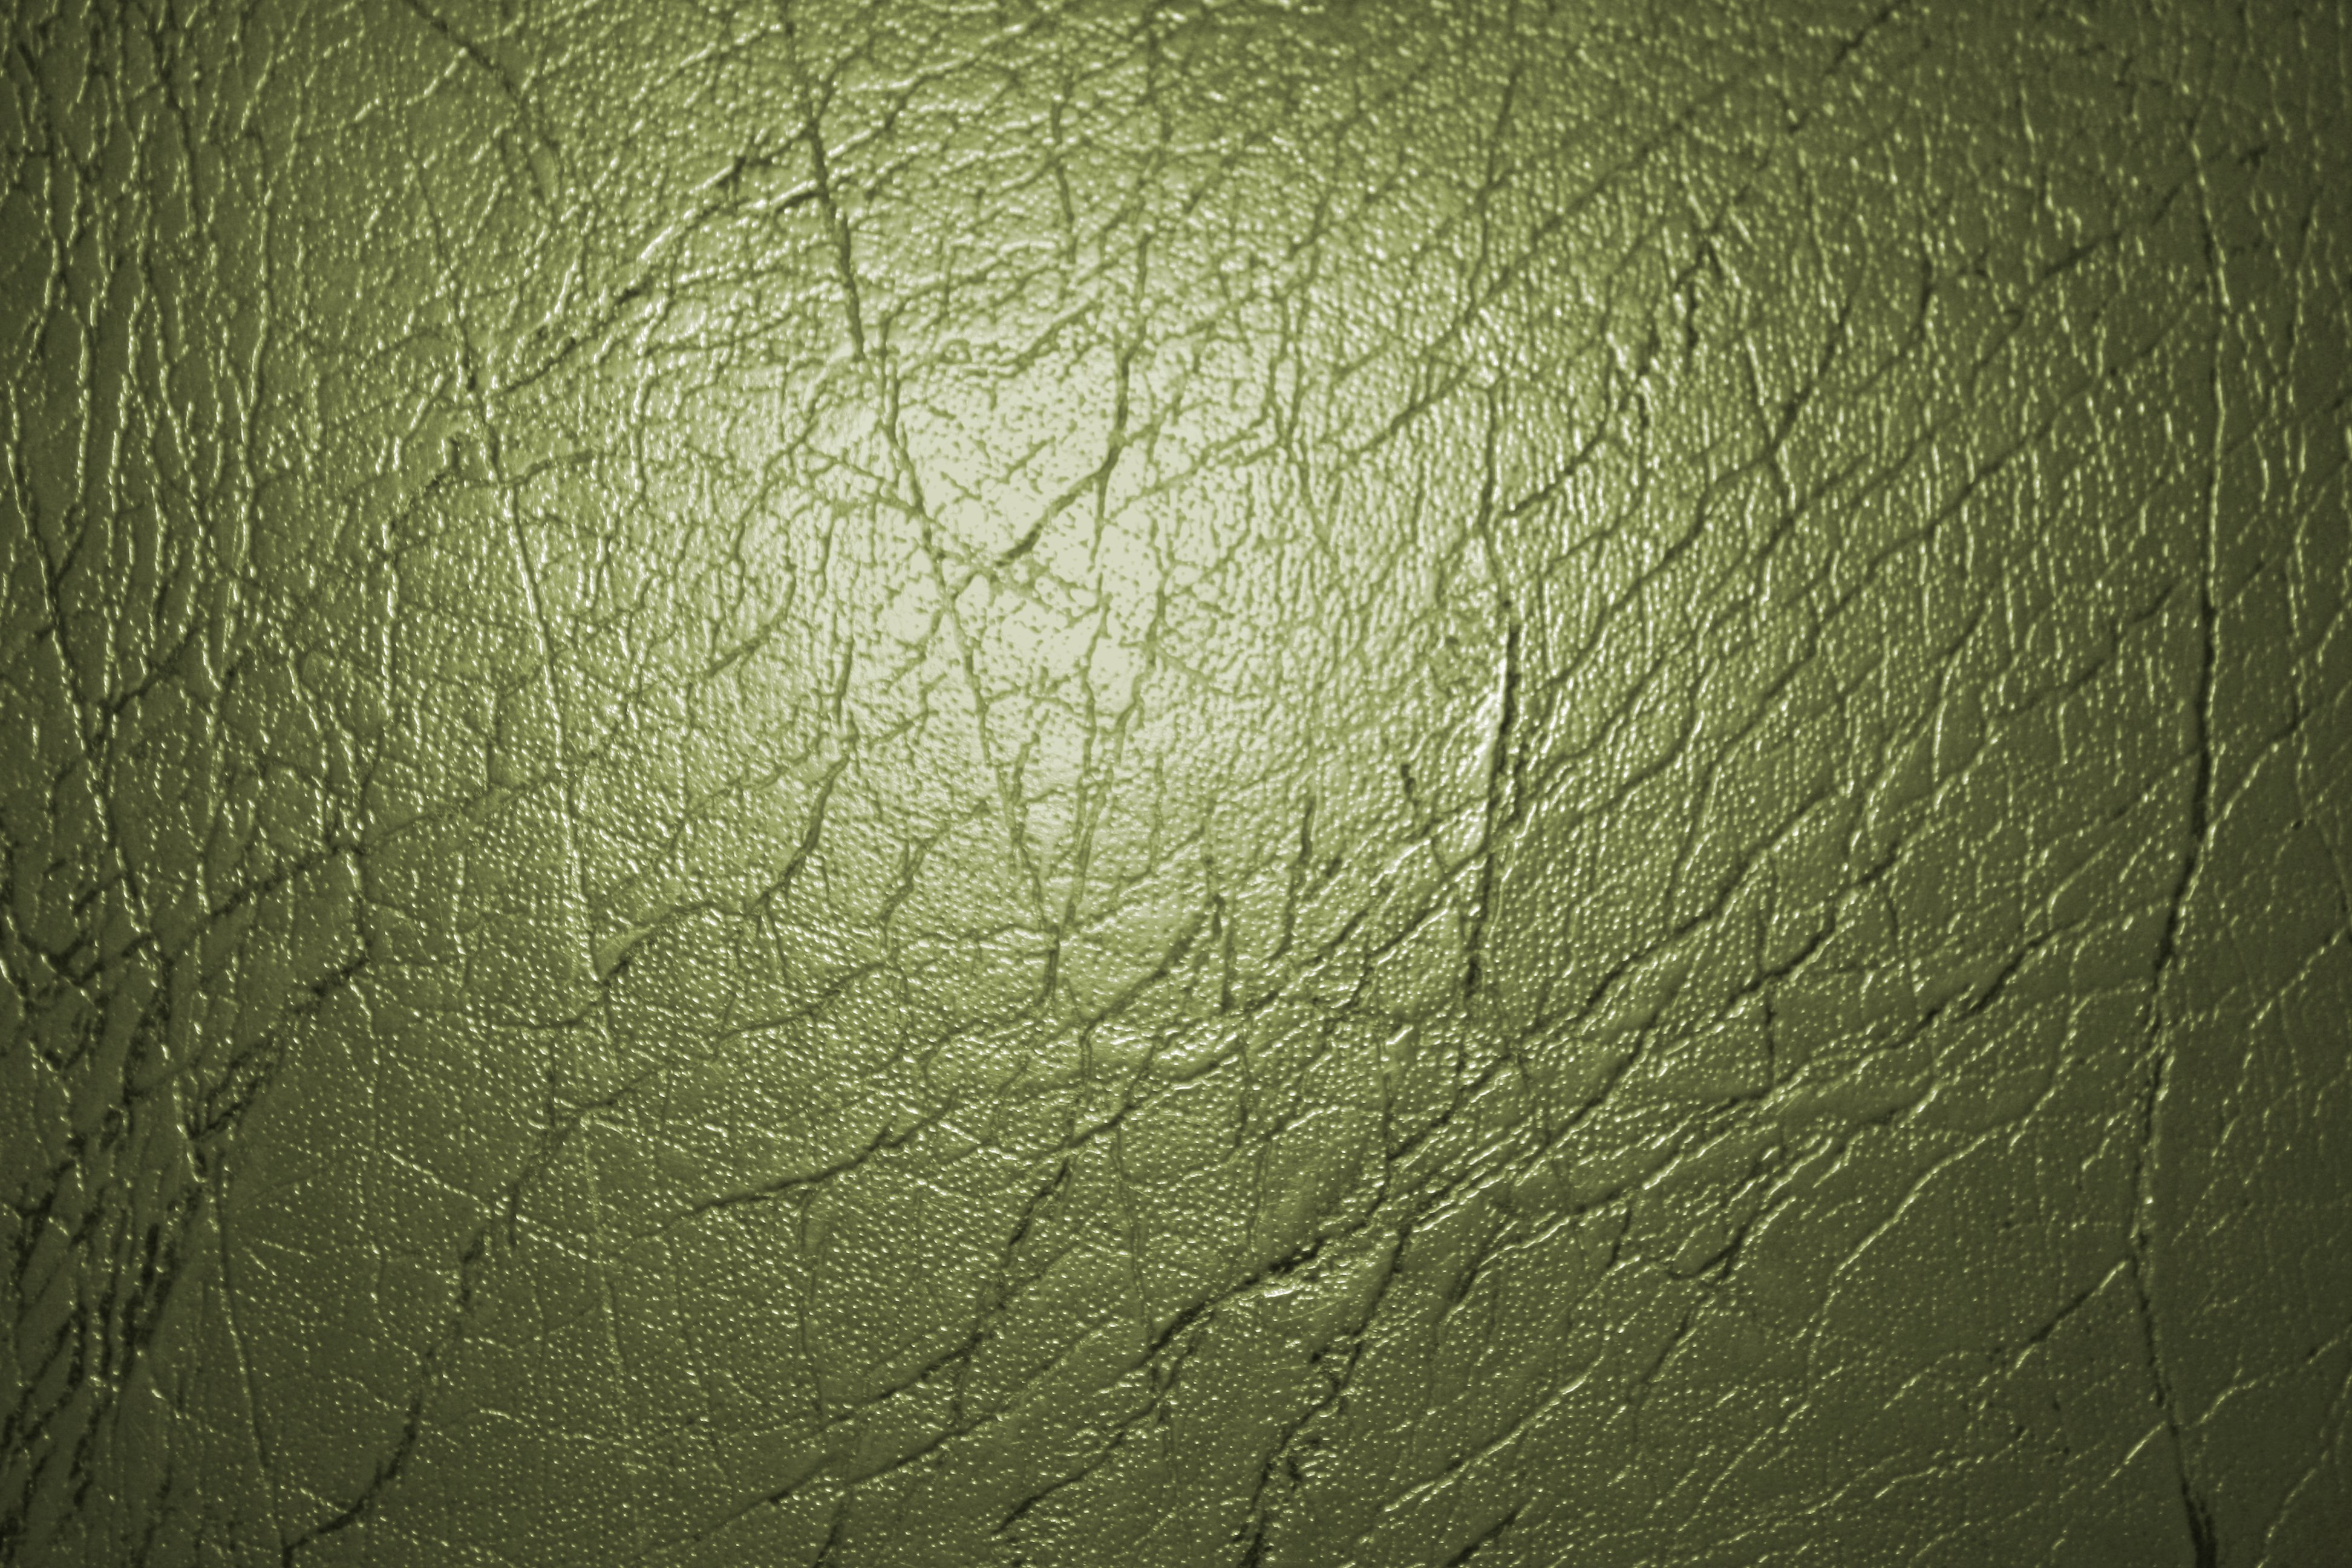 Olive Green Leather Texture Picture Photograph 3888x2592